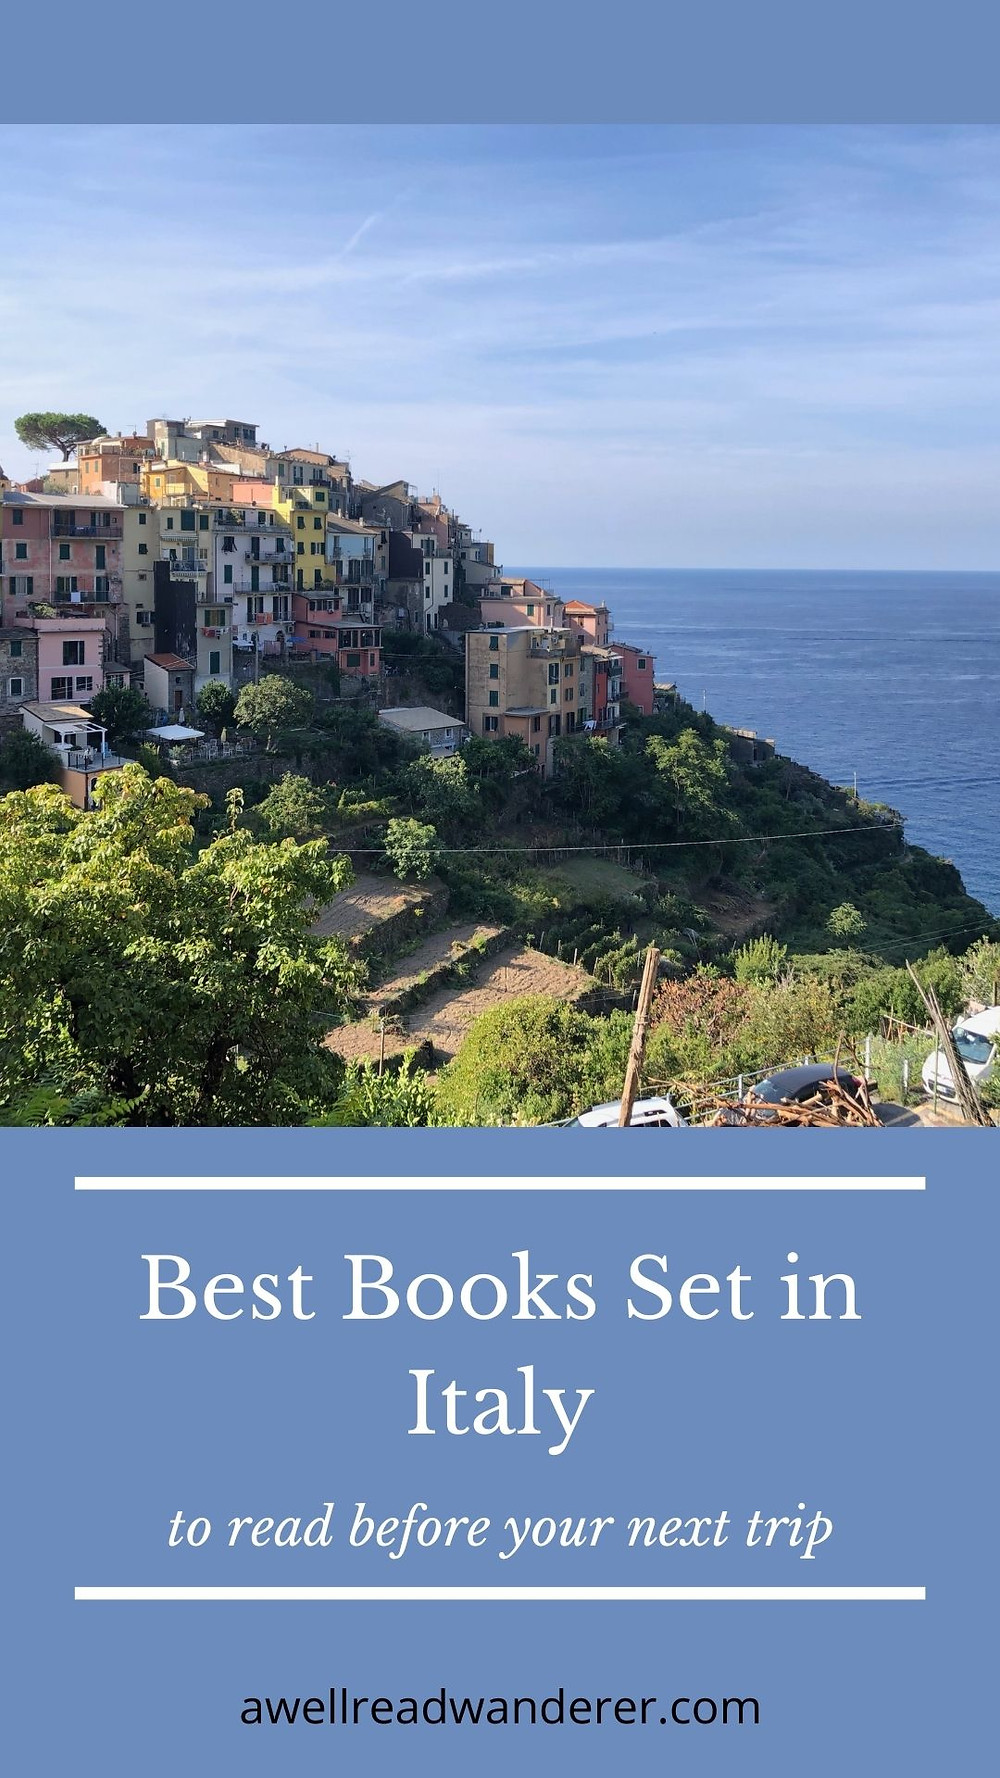 best books set in italy novels set in italy fiction